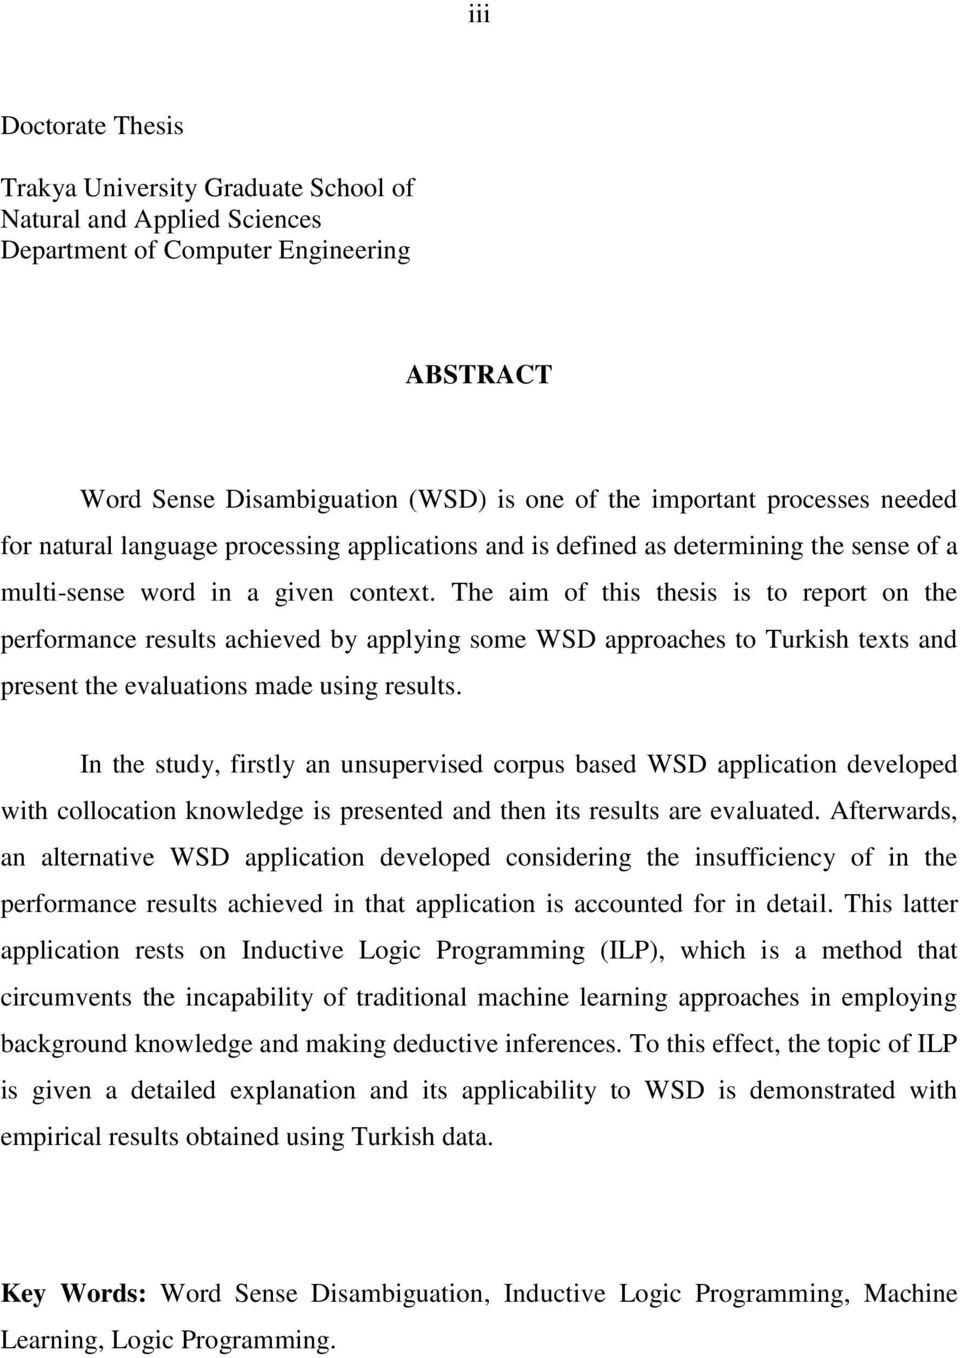 The aim of this thesis is to report on the performance results achieved by applying some WSD approaches to Turkish texts and present the evaluations made using results.